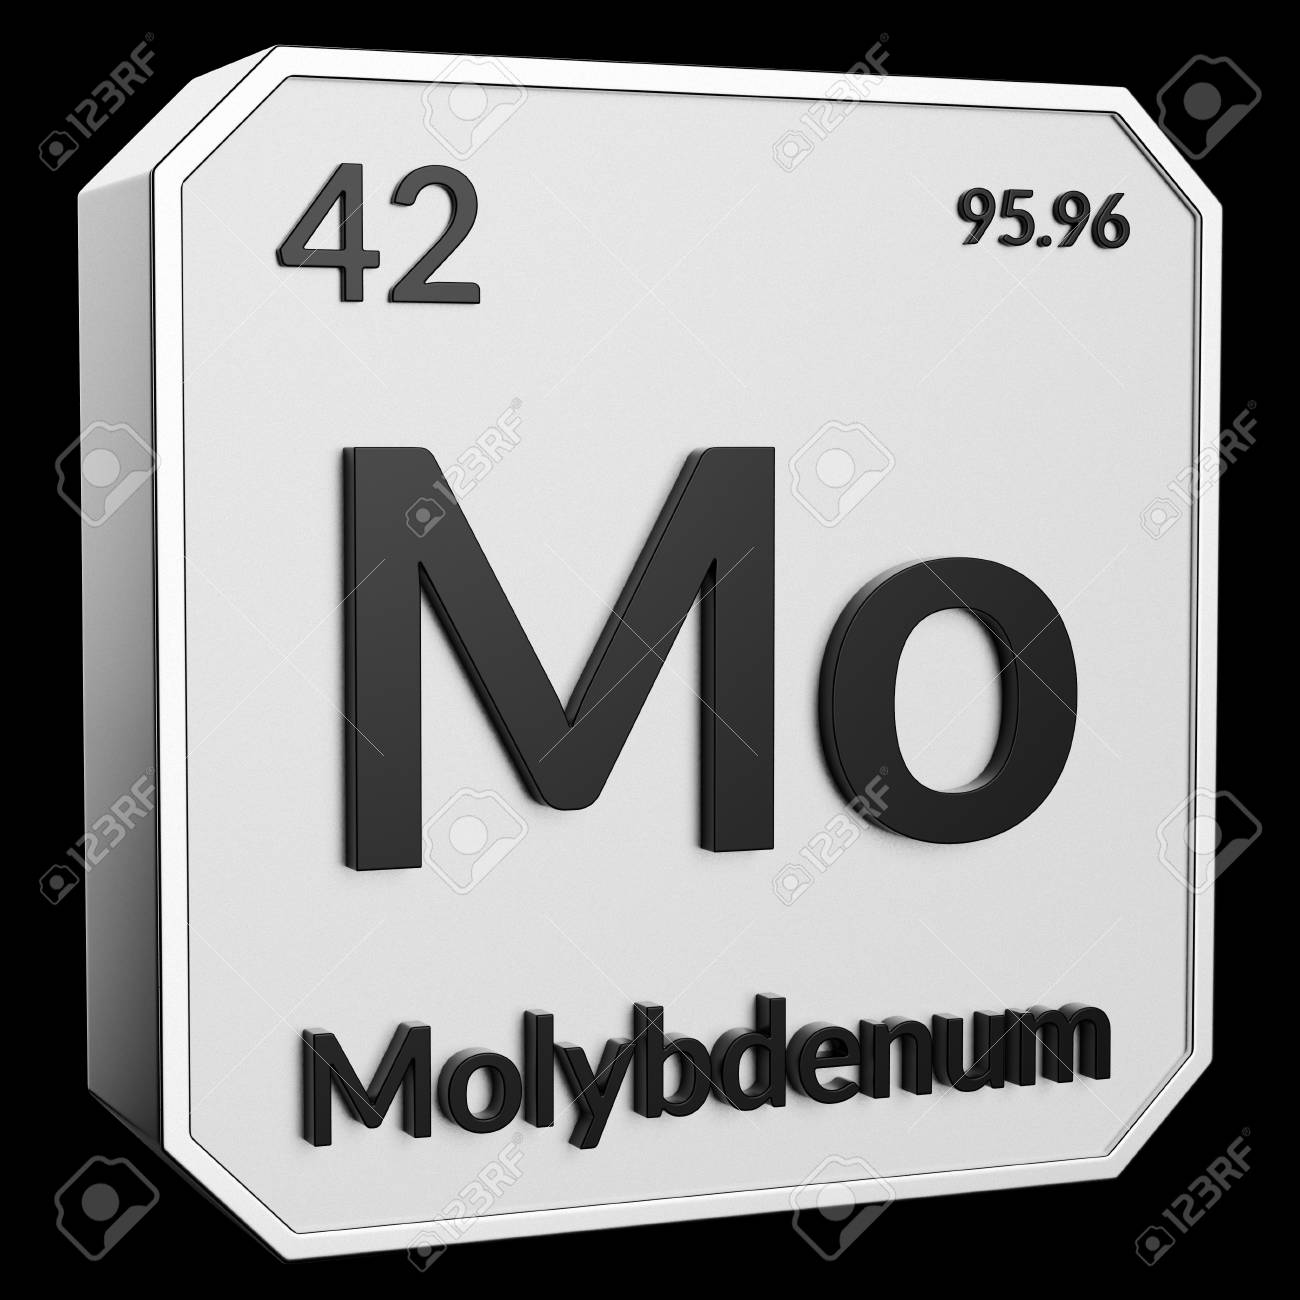 3d Text Of Chemical Element Molybdenum Its Atomic Weight Periodic